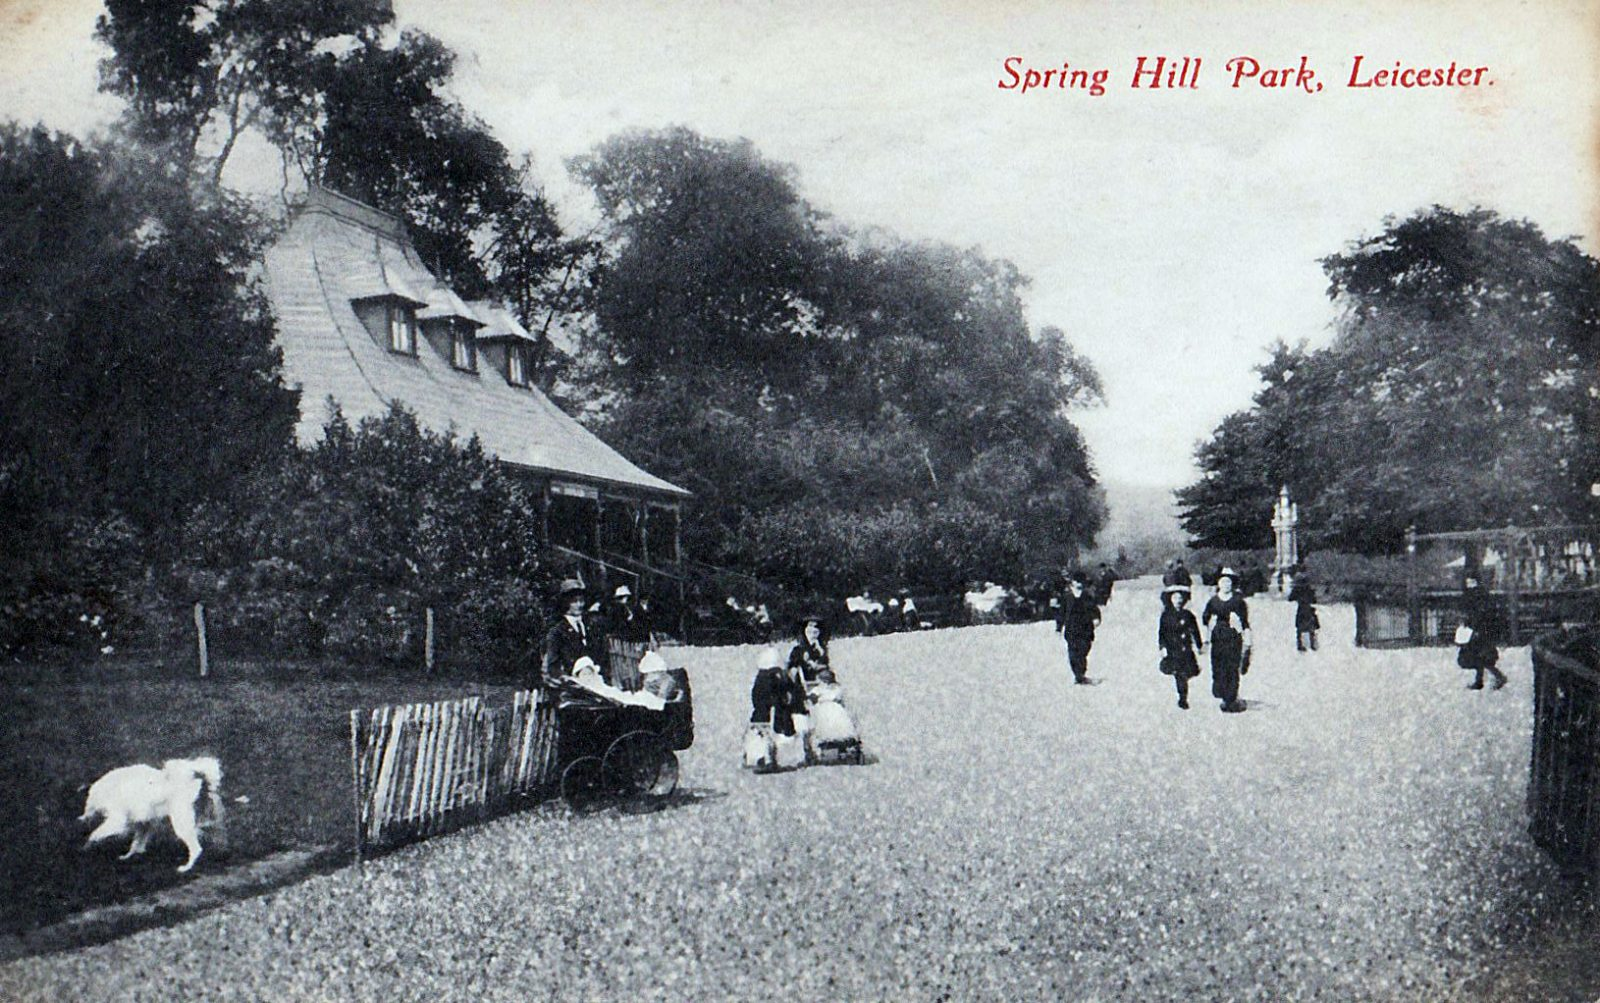 Spinney Hill Park, Leicester. 1901-1920: The Pavilion and broad avenue with many people promenading. Note incorrect name on card. (File:1443)